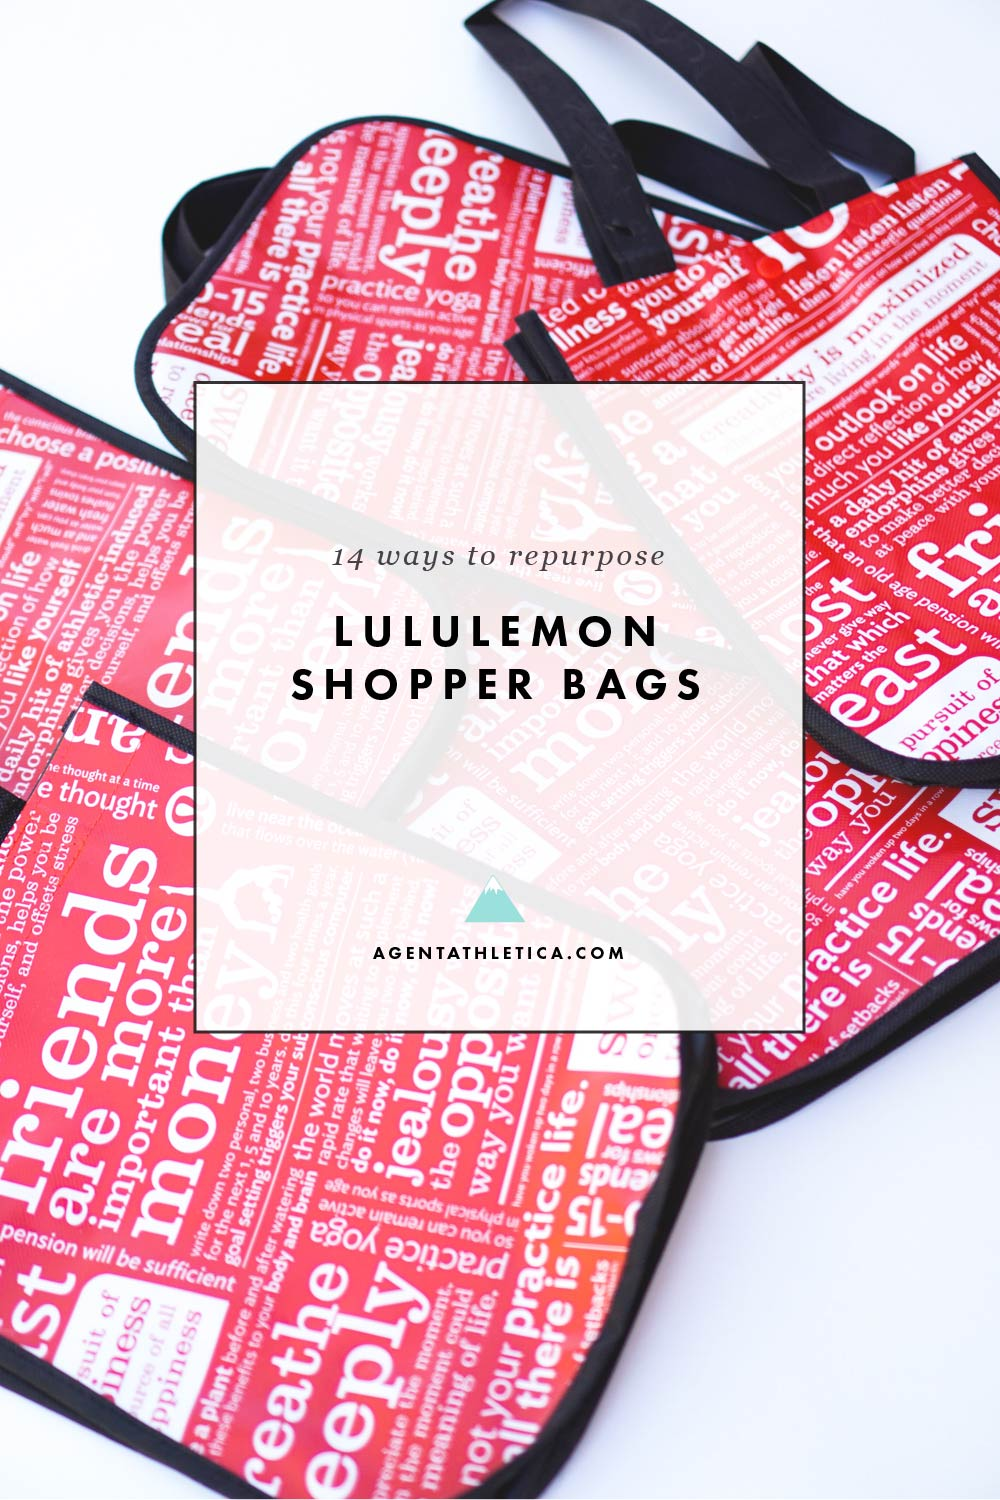 14 ways to repurpose your lululemon shopping bags